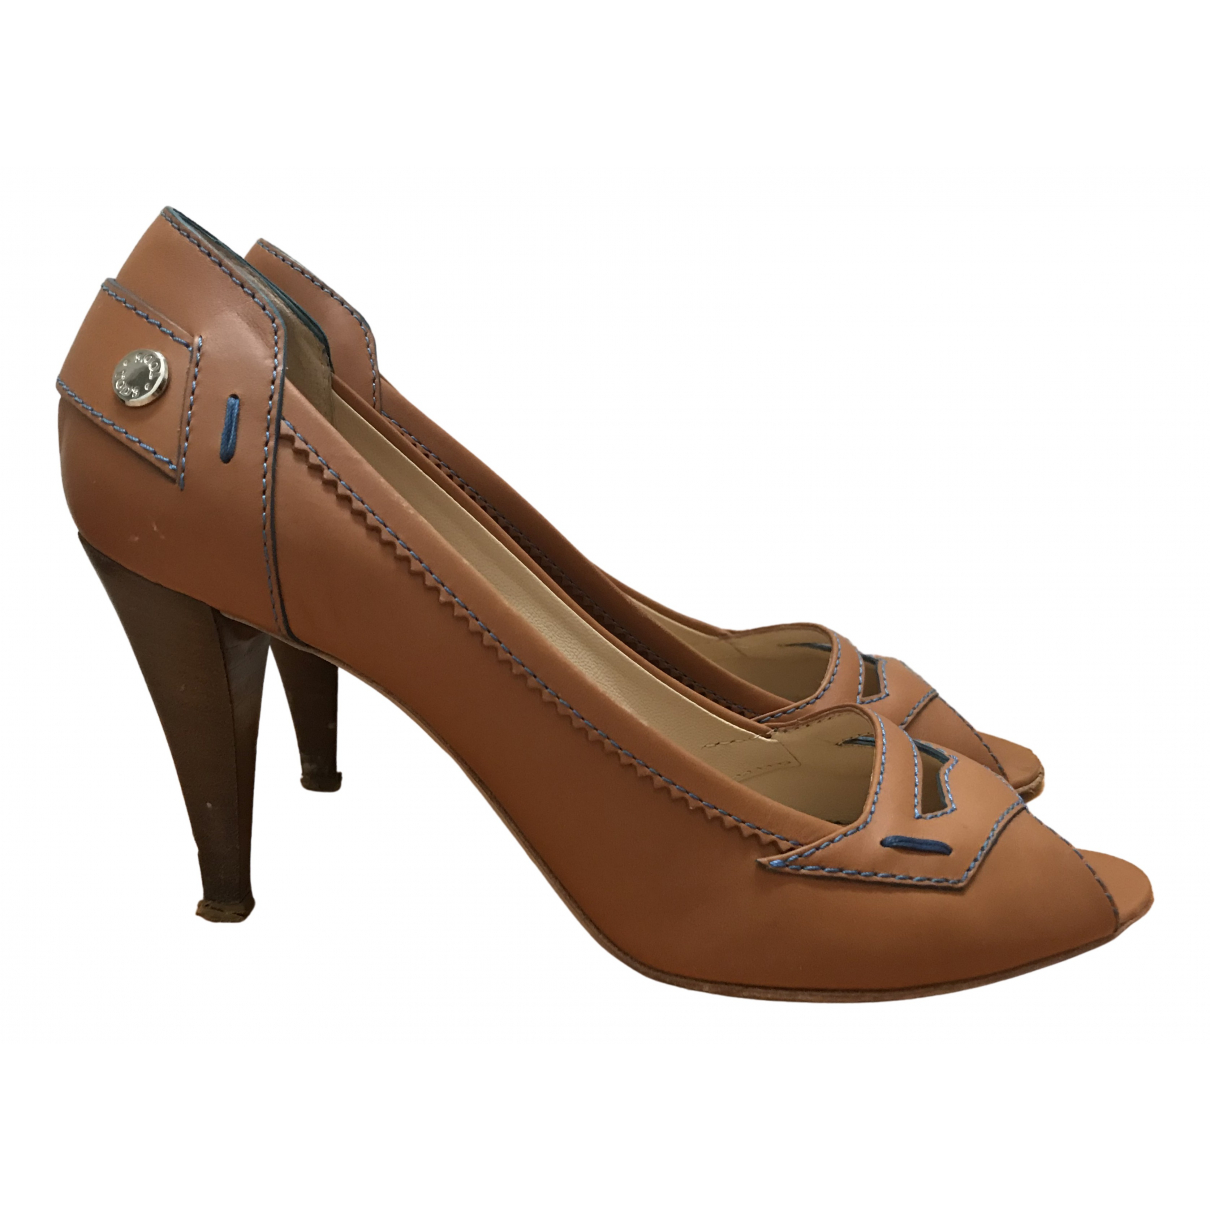 Tod's N Camel Leather Heels for Women 38 EU